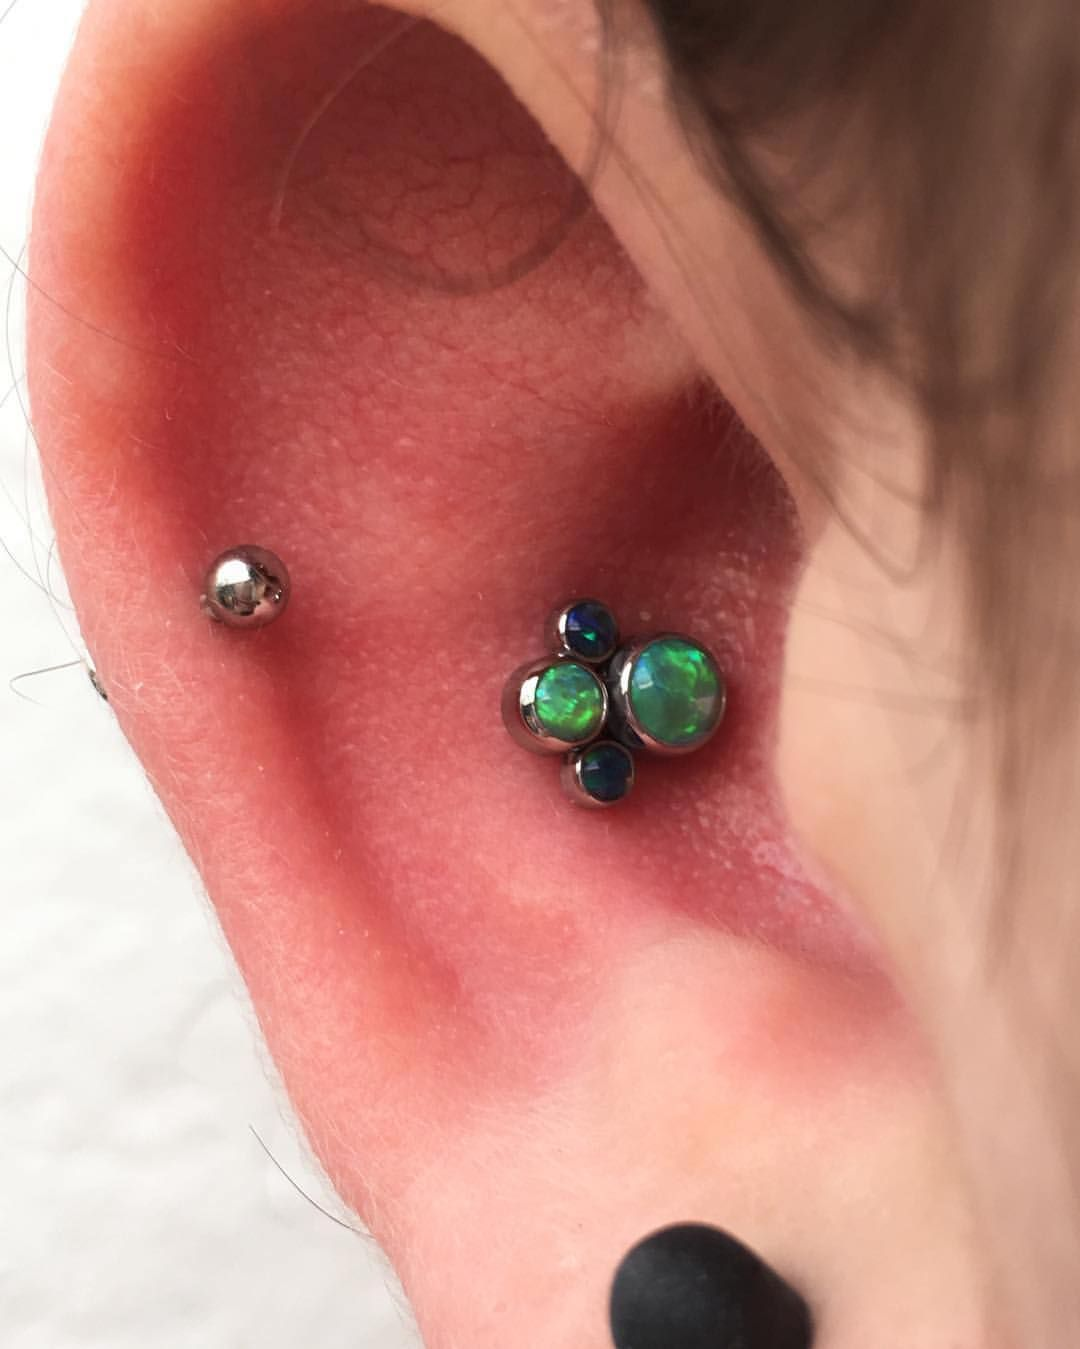 Got to upgrade this awesome little conch with this sweet @anatometalinc cluster. #oldlondonroad #oldlondonroadtattoos #opal #opals #cluster #conch #body #bodypaint #bodyart #bodypiercer #bodypiercing...